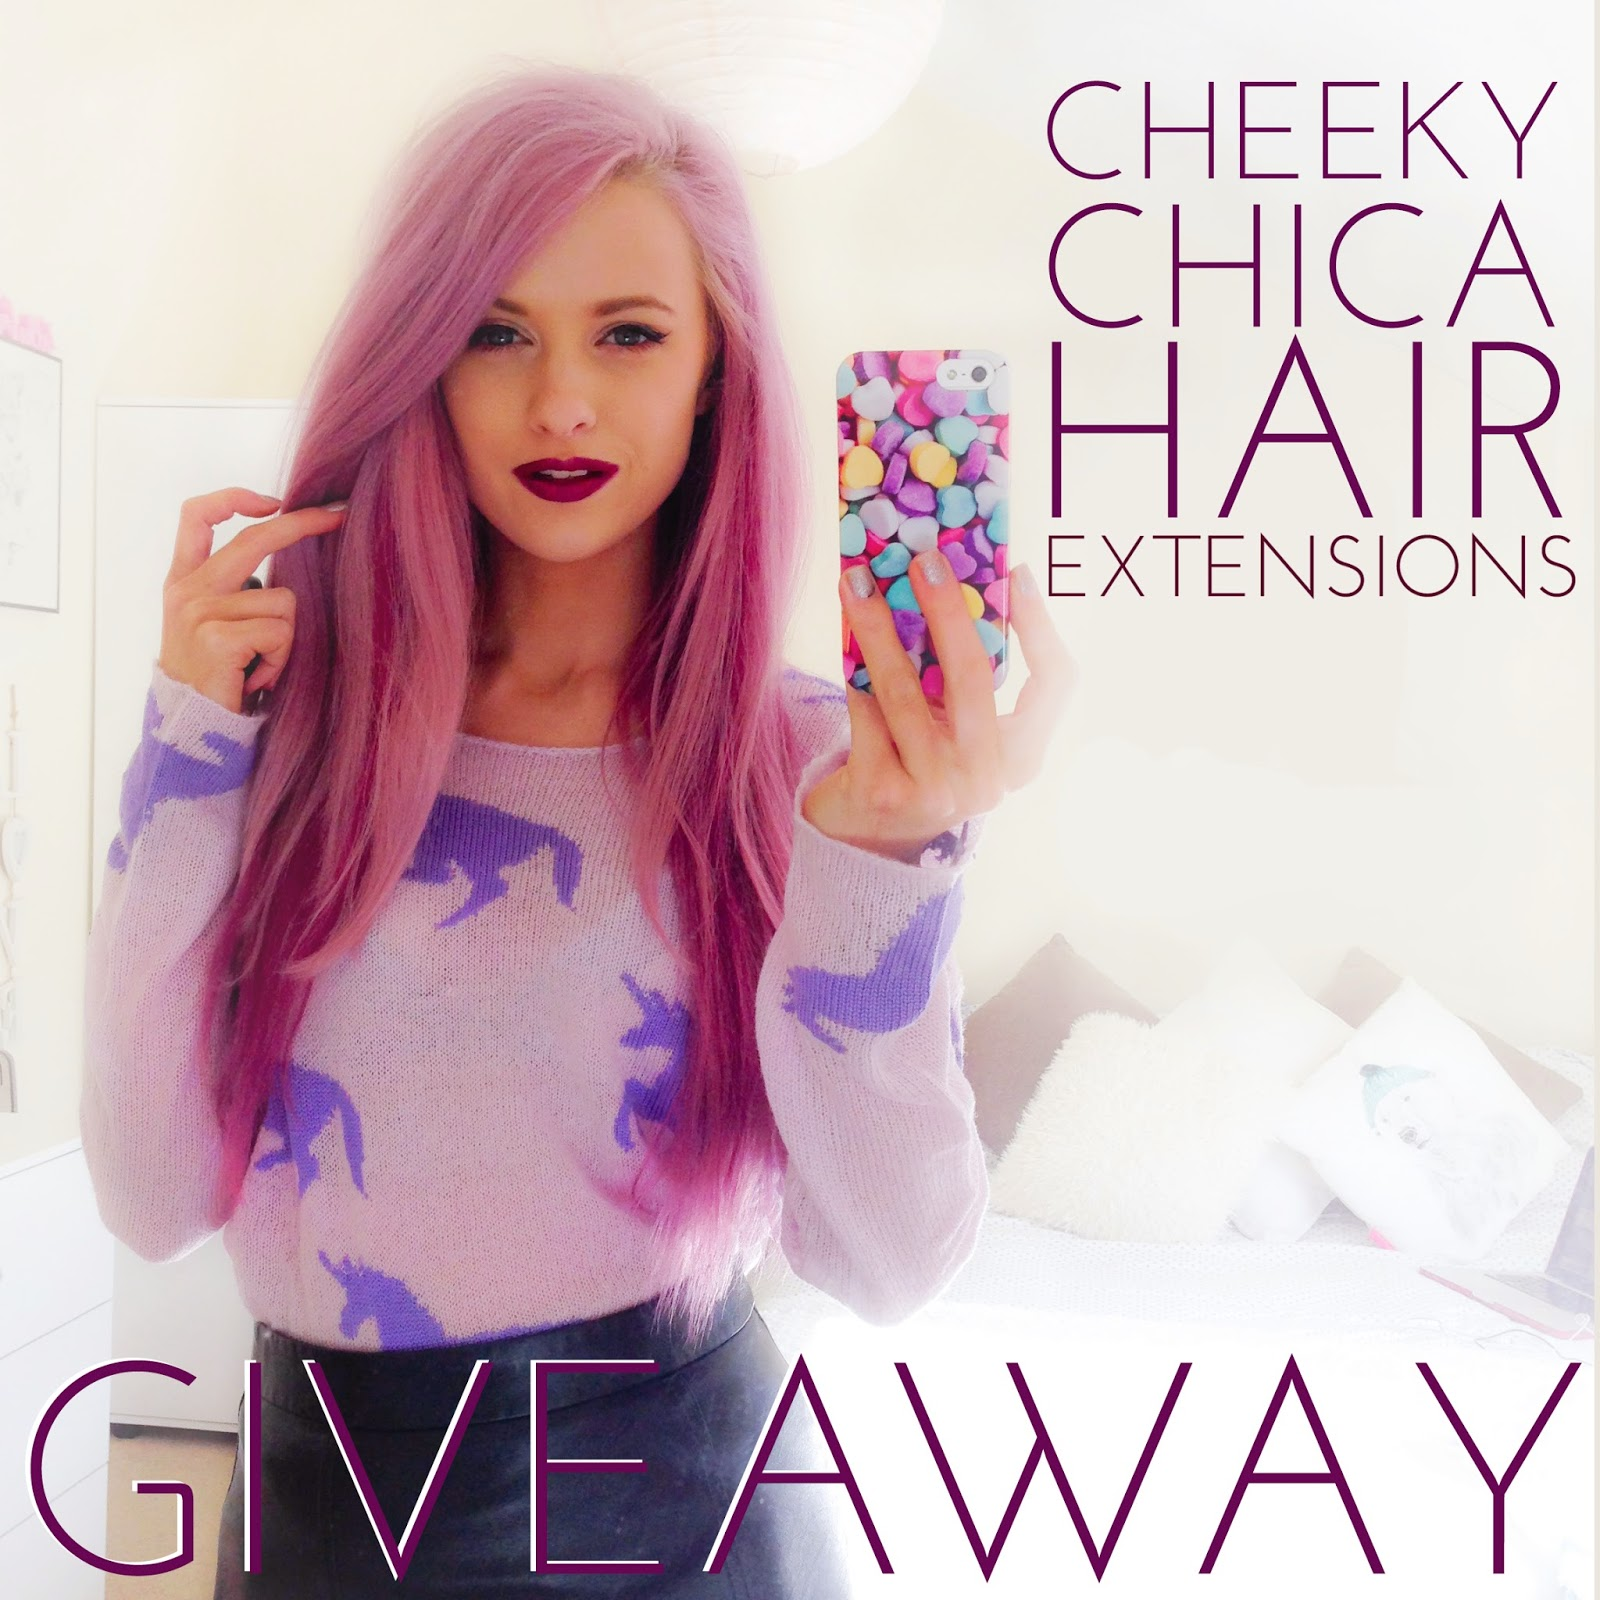 Cheeky Chica Hair Extensions Giveaway Inthefrow Bloglovin